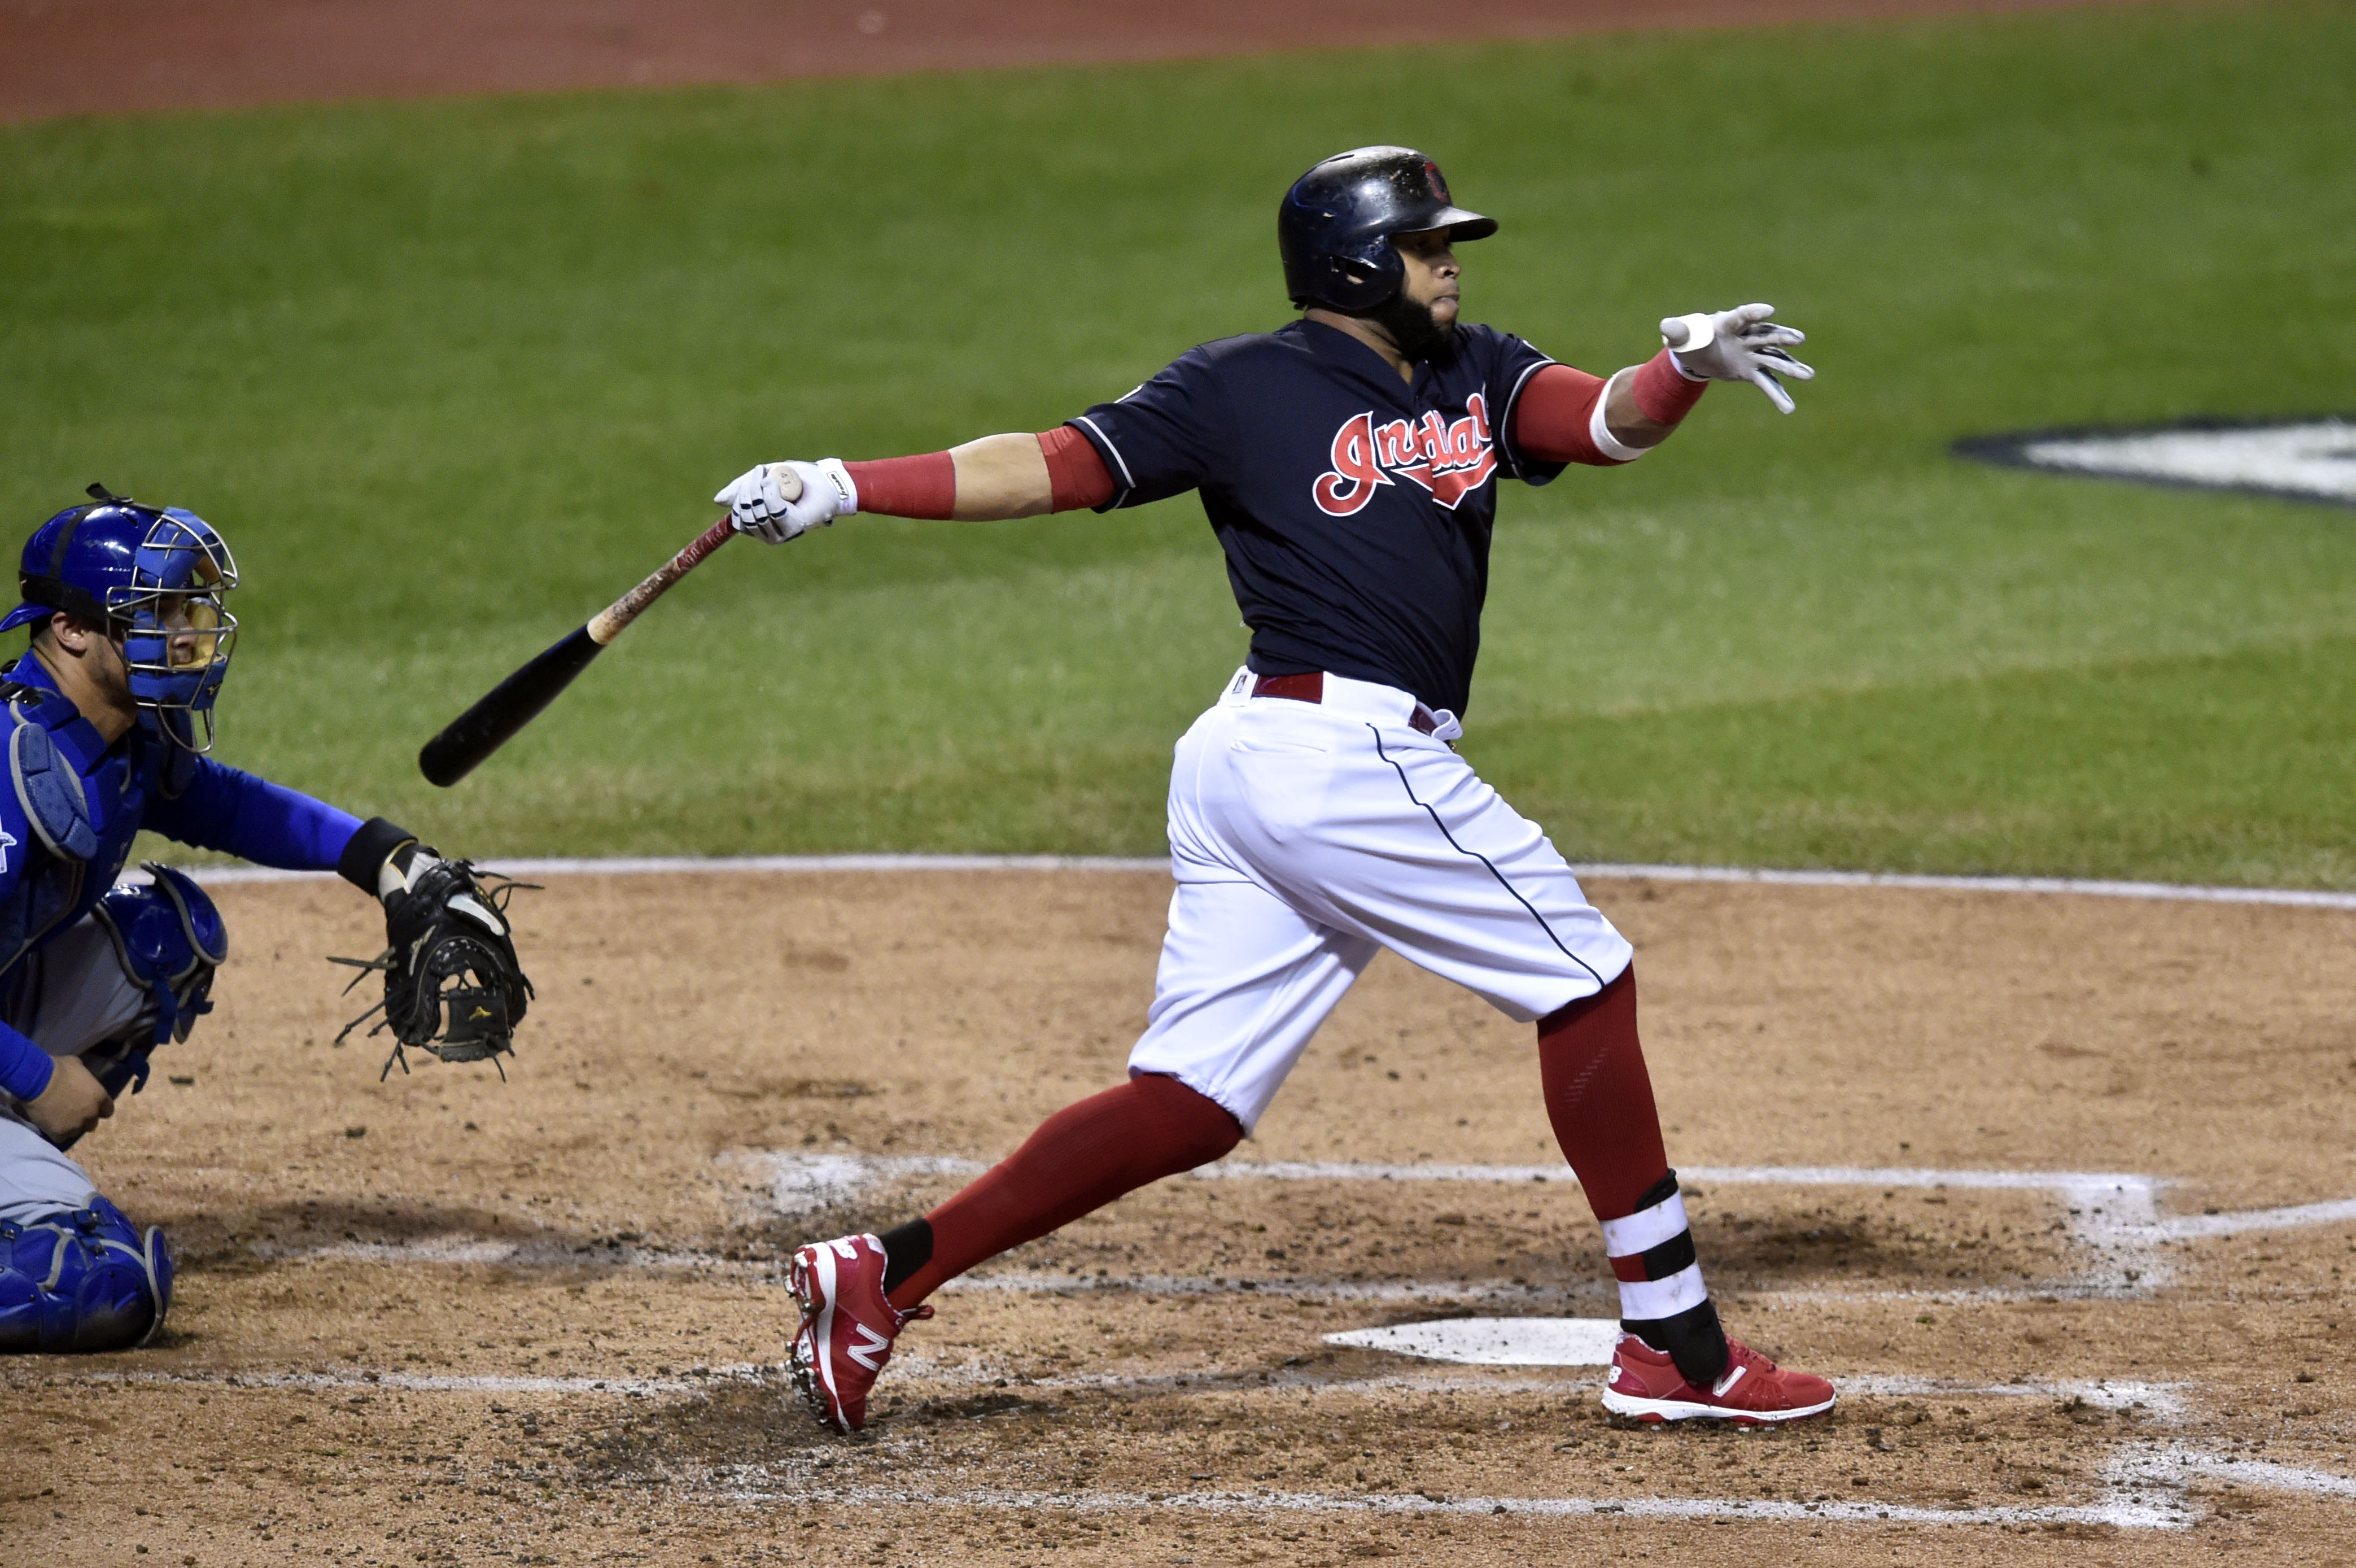 Cleveland Indians Lineup: Carlos Santana Best Option to Hit Leadoff?